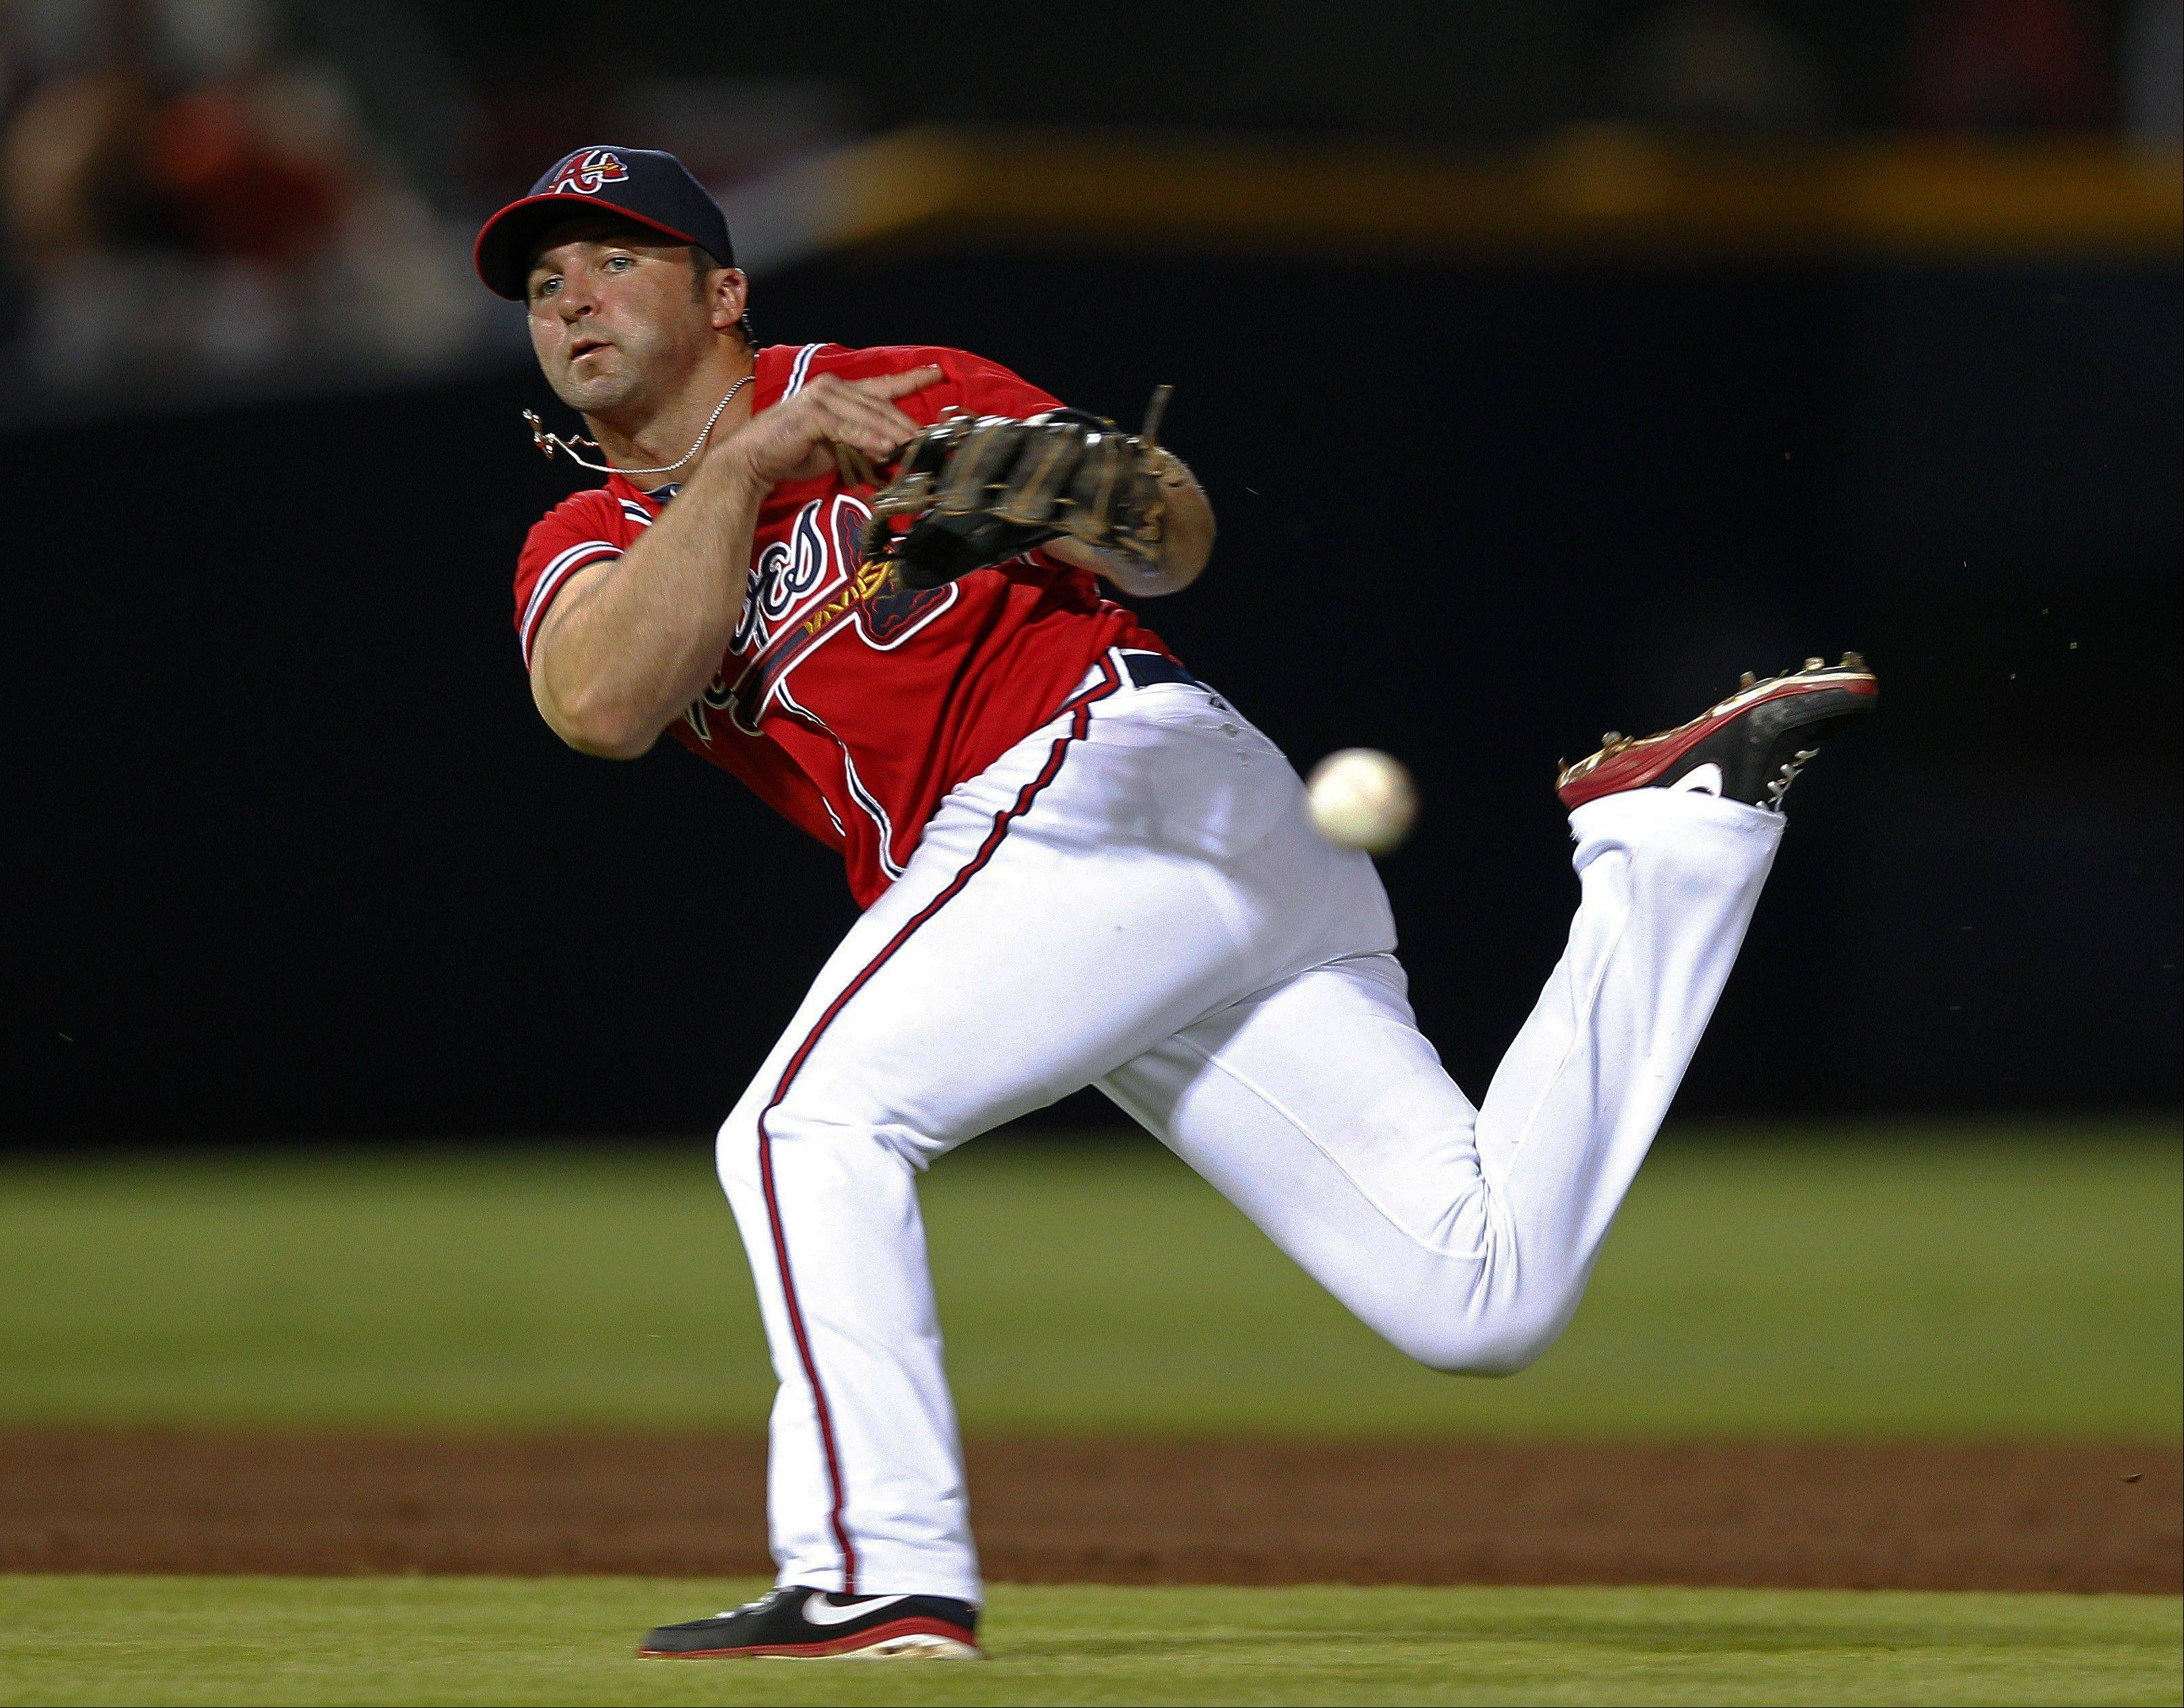 Braves second baseman Dan Uggla throws across his body after fielding a ball hit for a single by Houston's Ben Francisco in the sixth inning Friday at home.